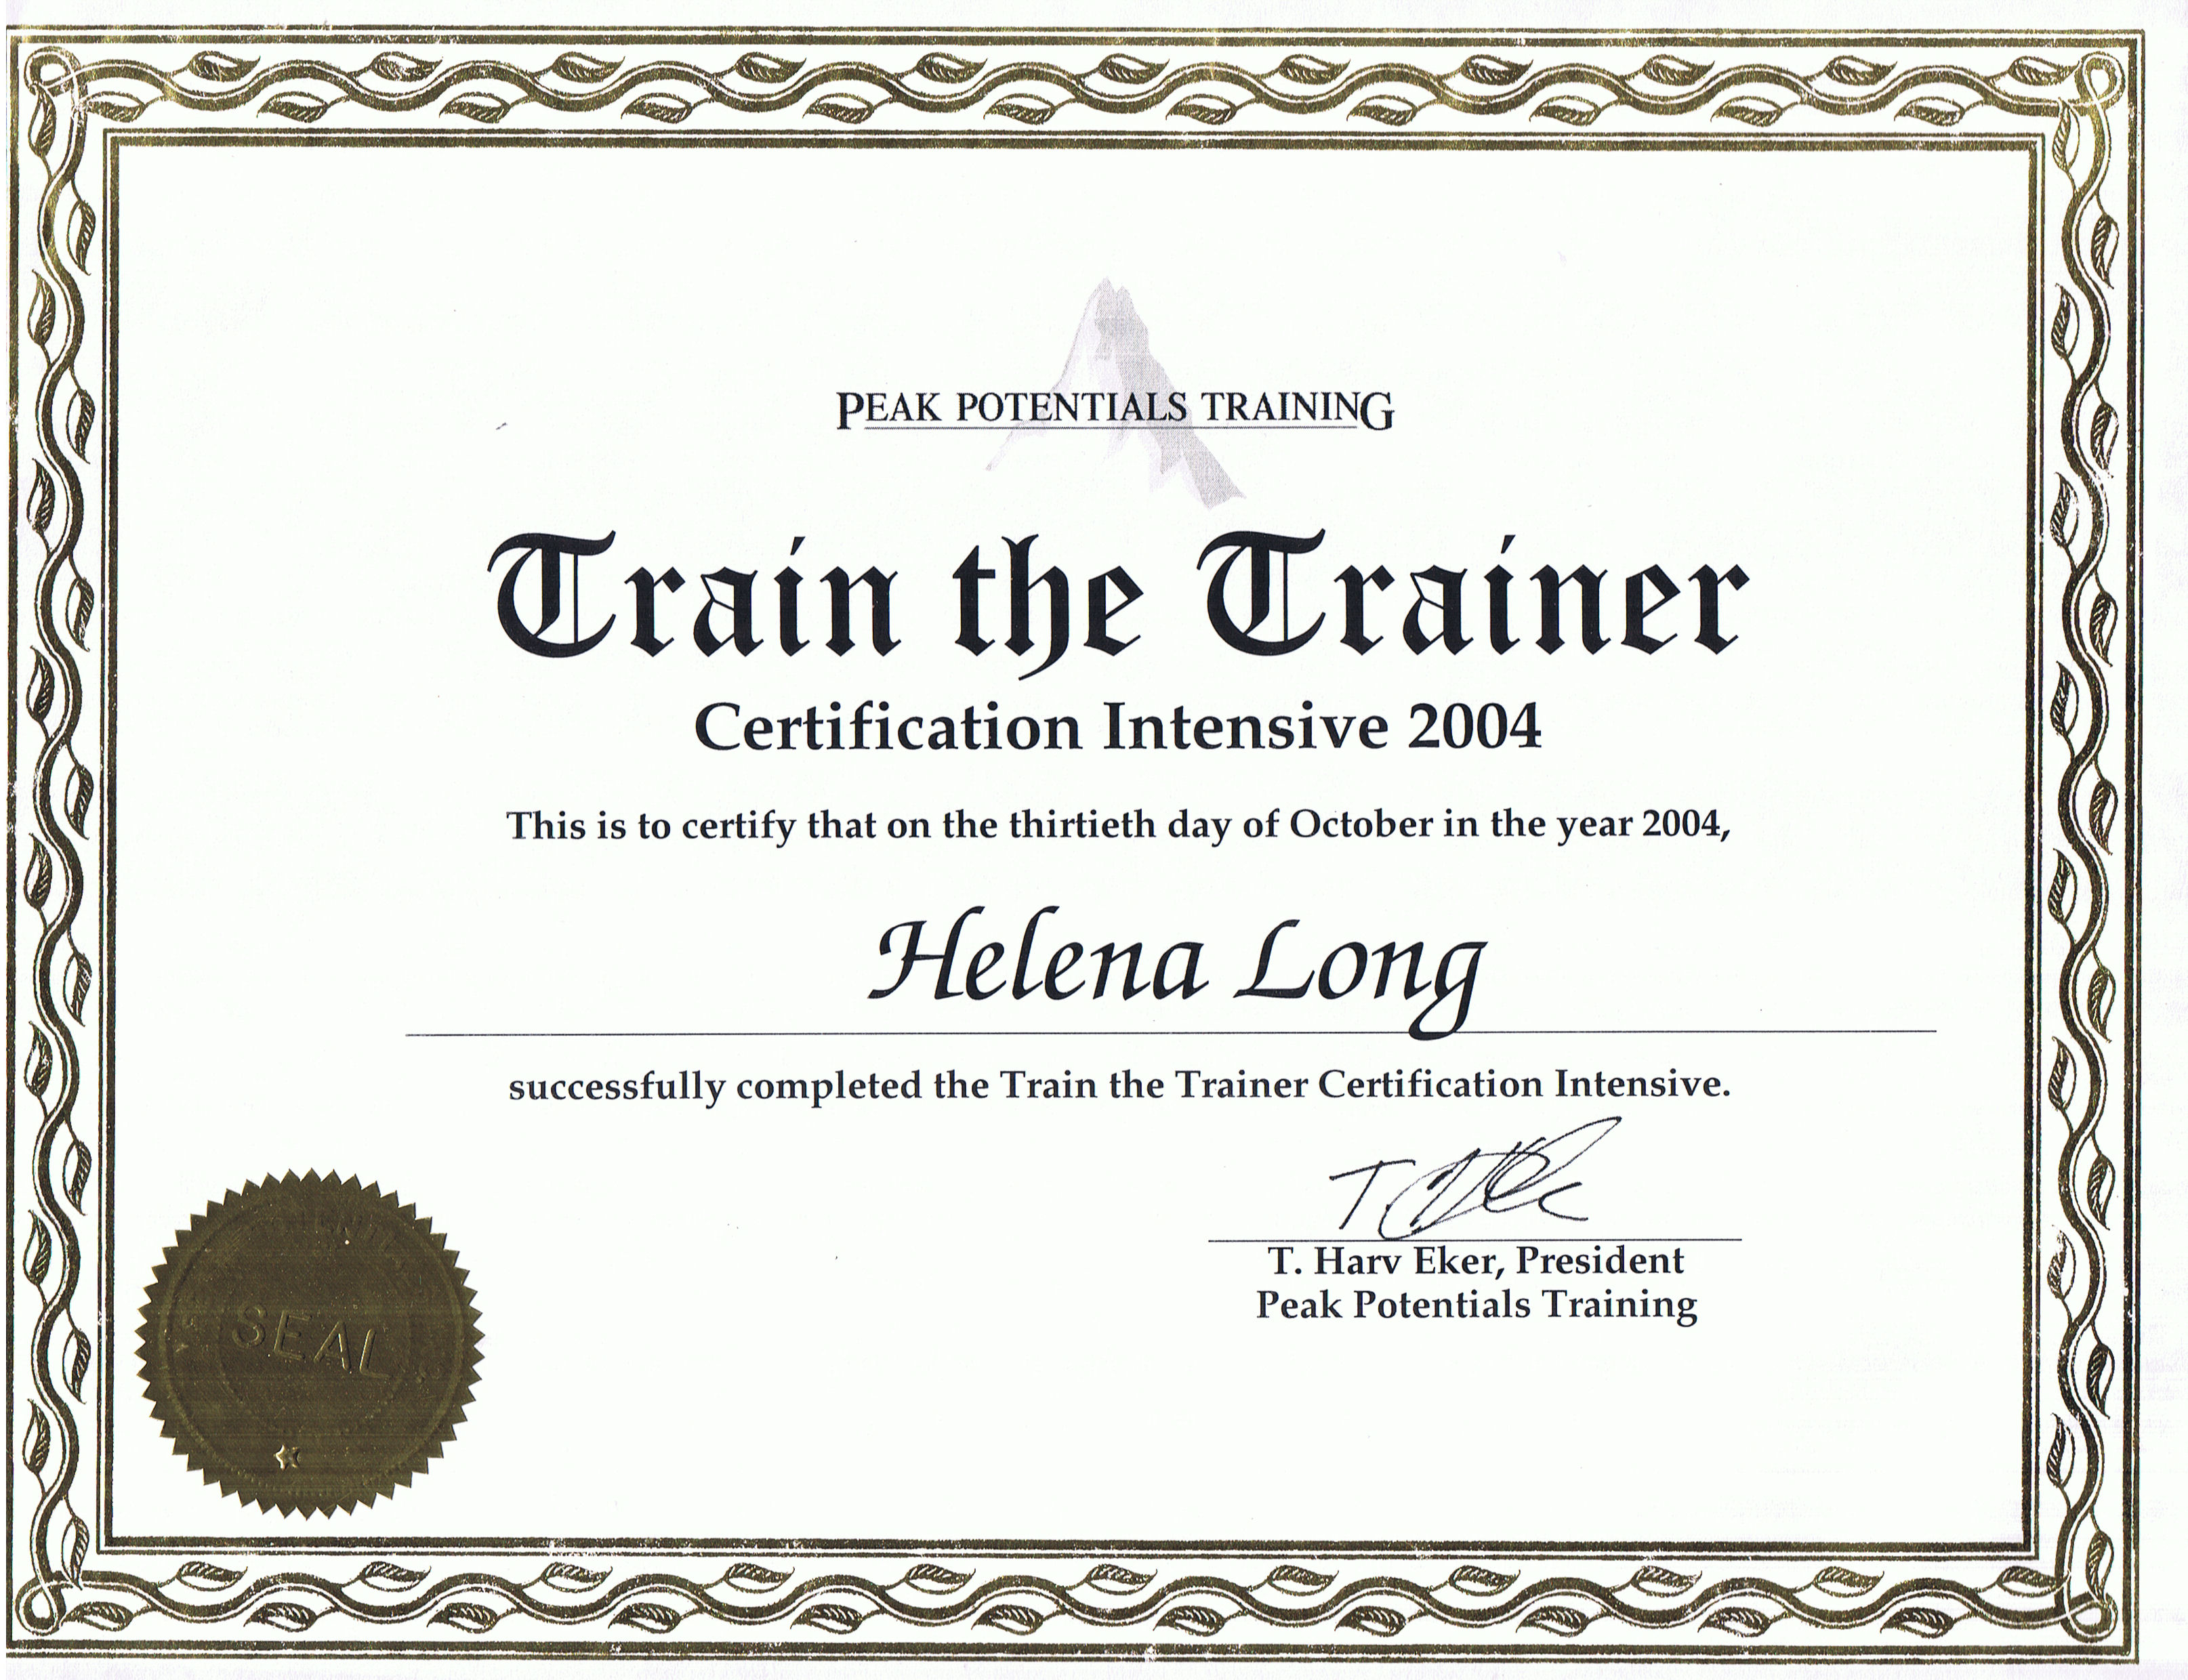 Credentials and qualifications helena long copywriter for Personal training certificate template